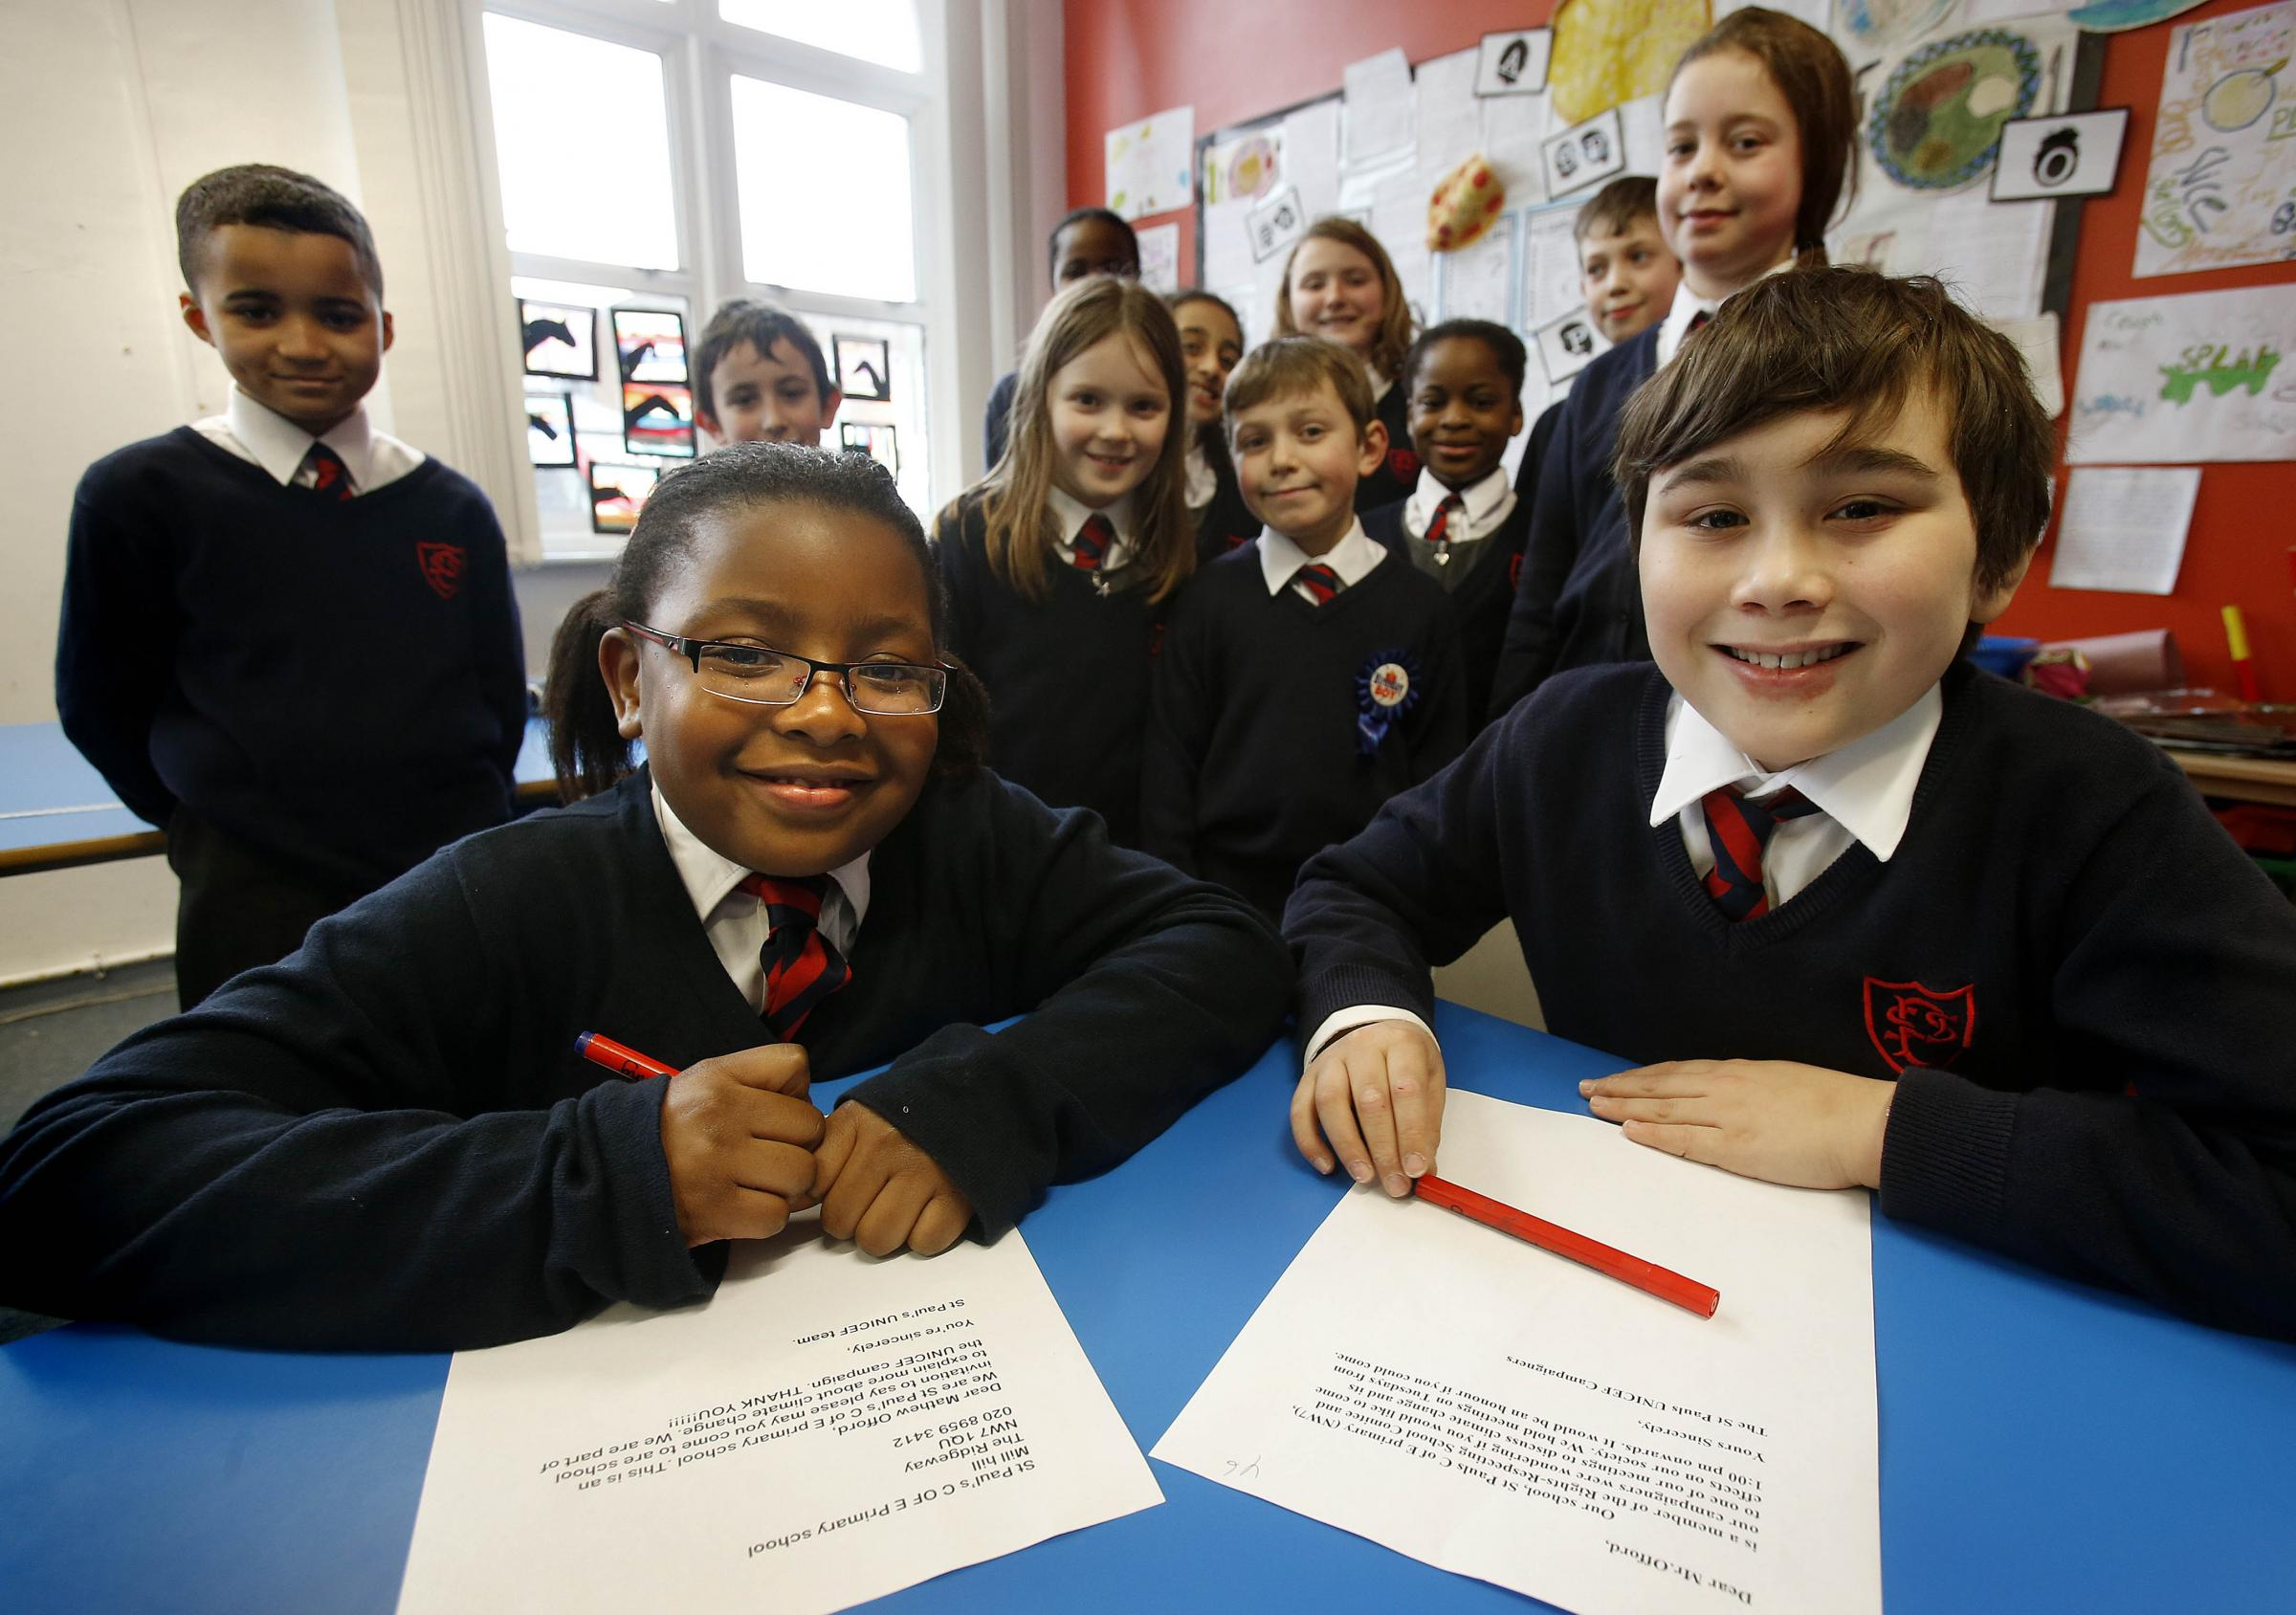 Climate change hot topic for school children